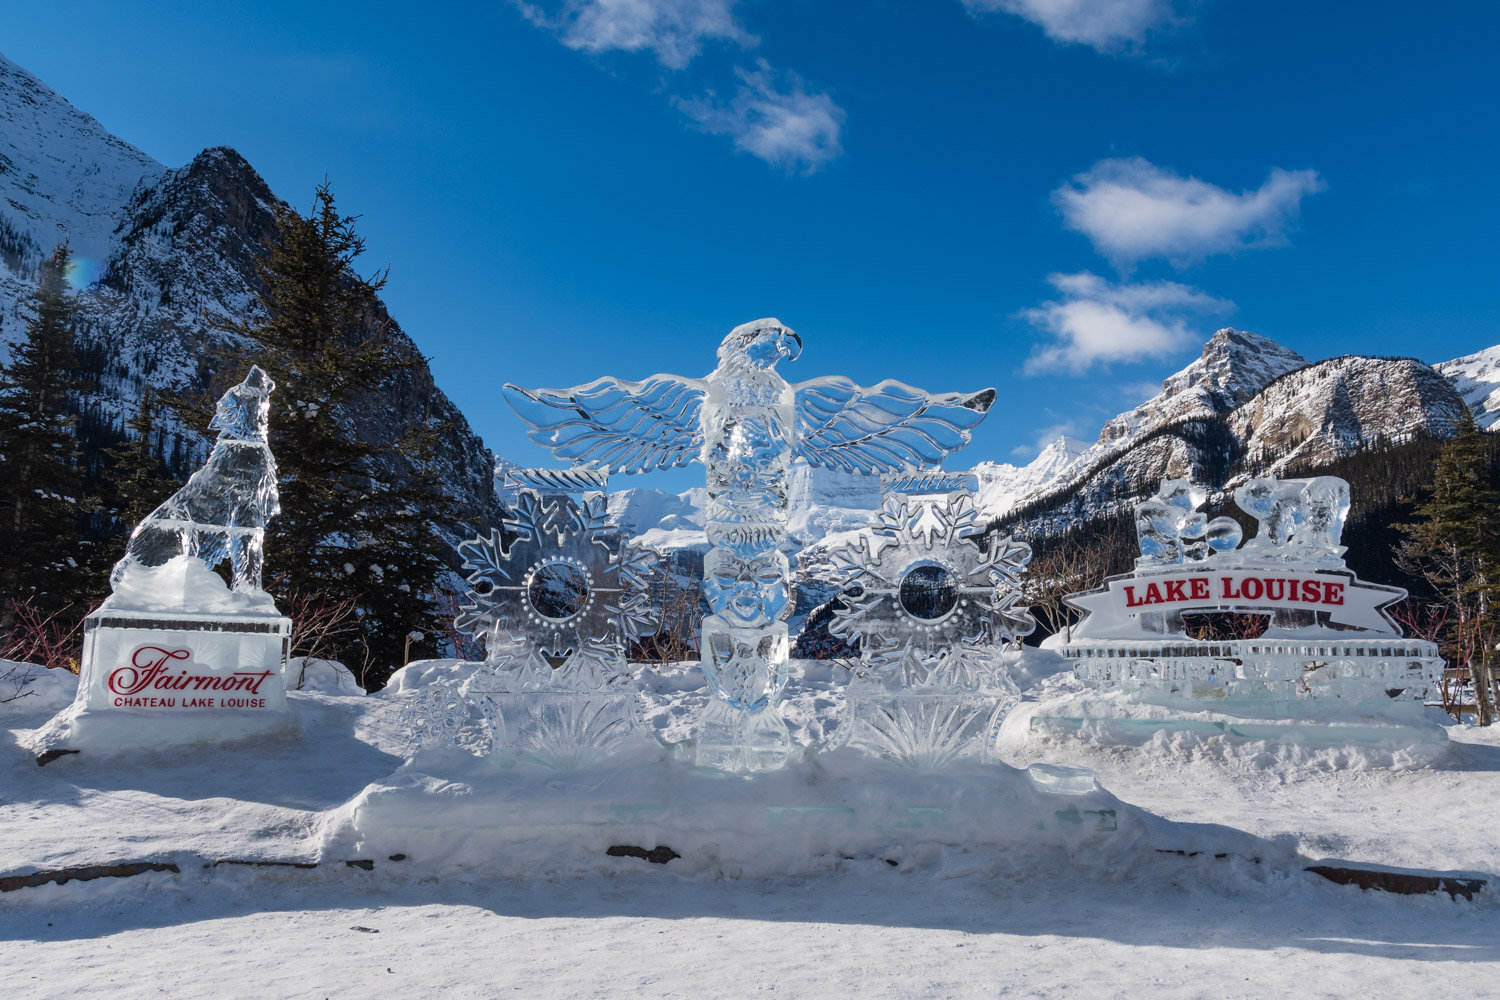 Ice magic, two words that sum up this place perfectly.